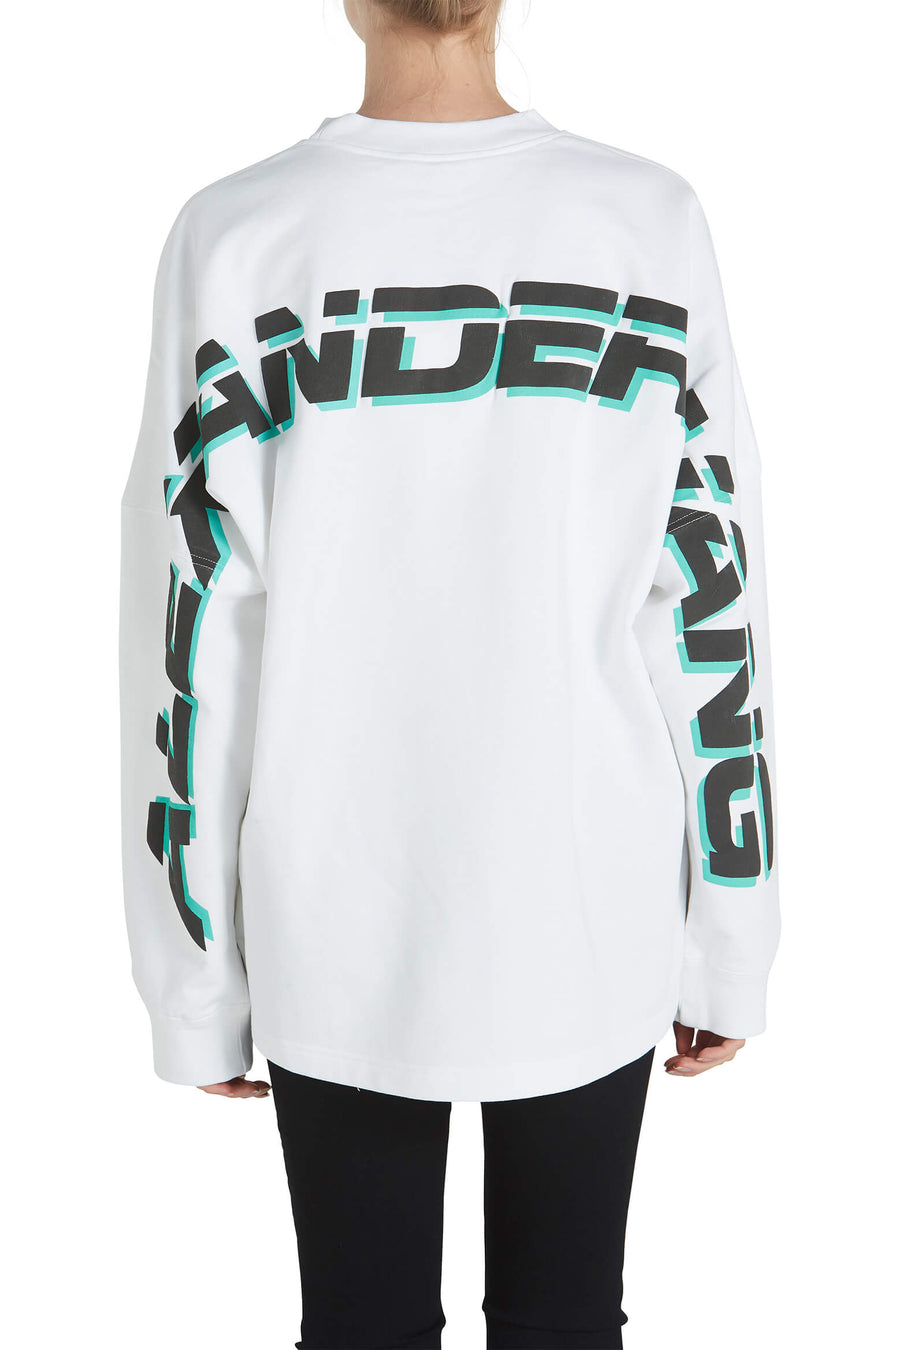 T By Alexander Wang Dry French Terry Crewneck Sweatshirt